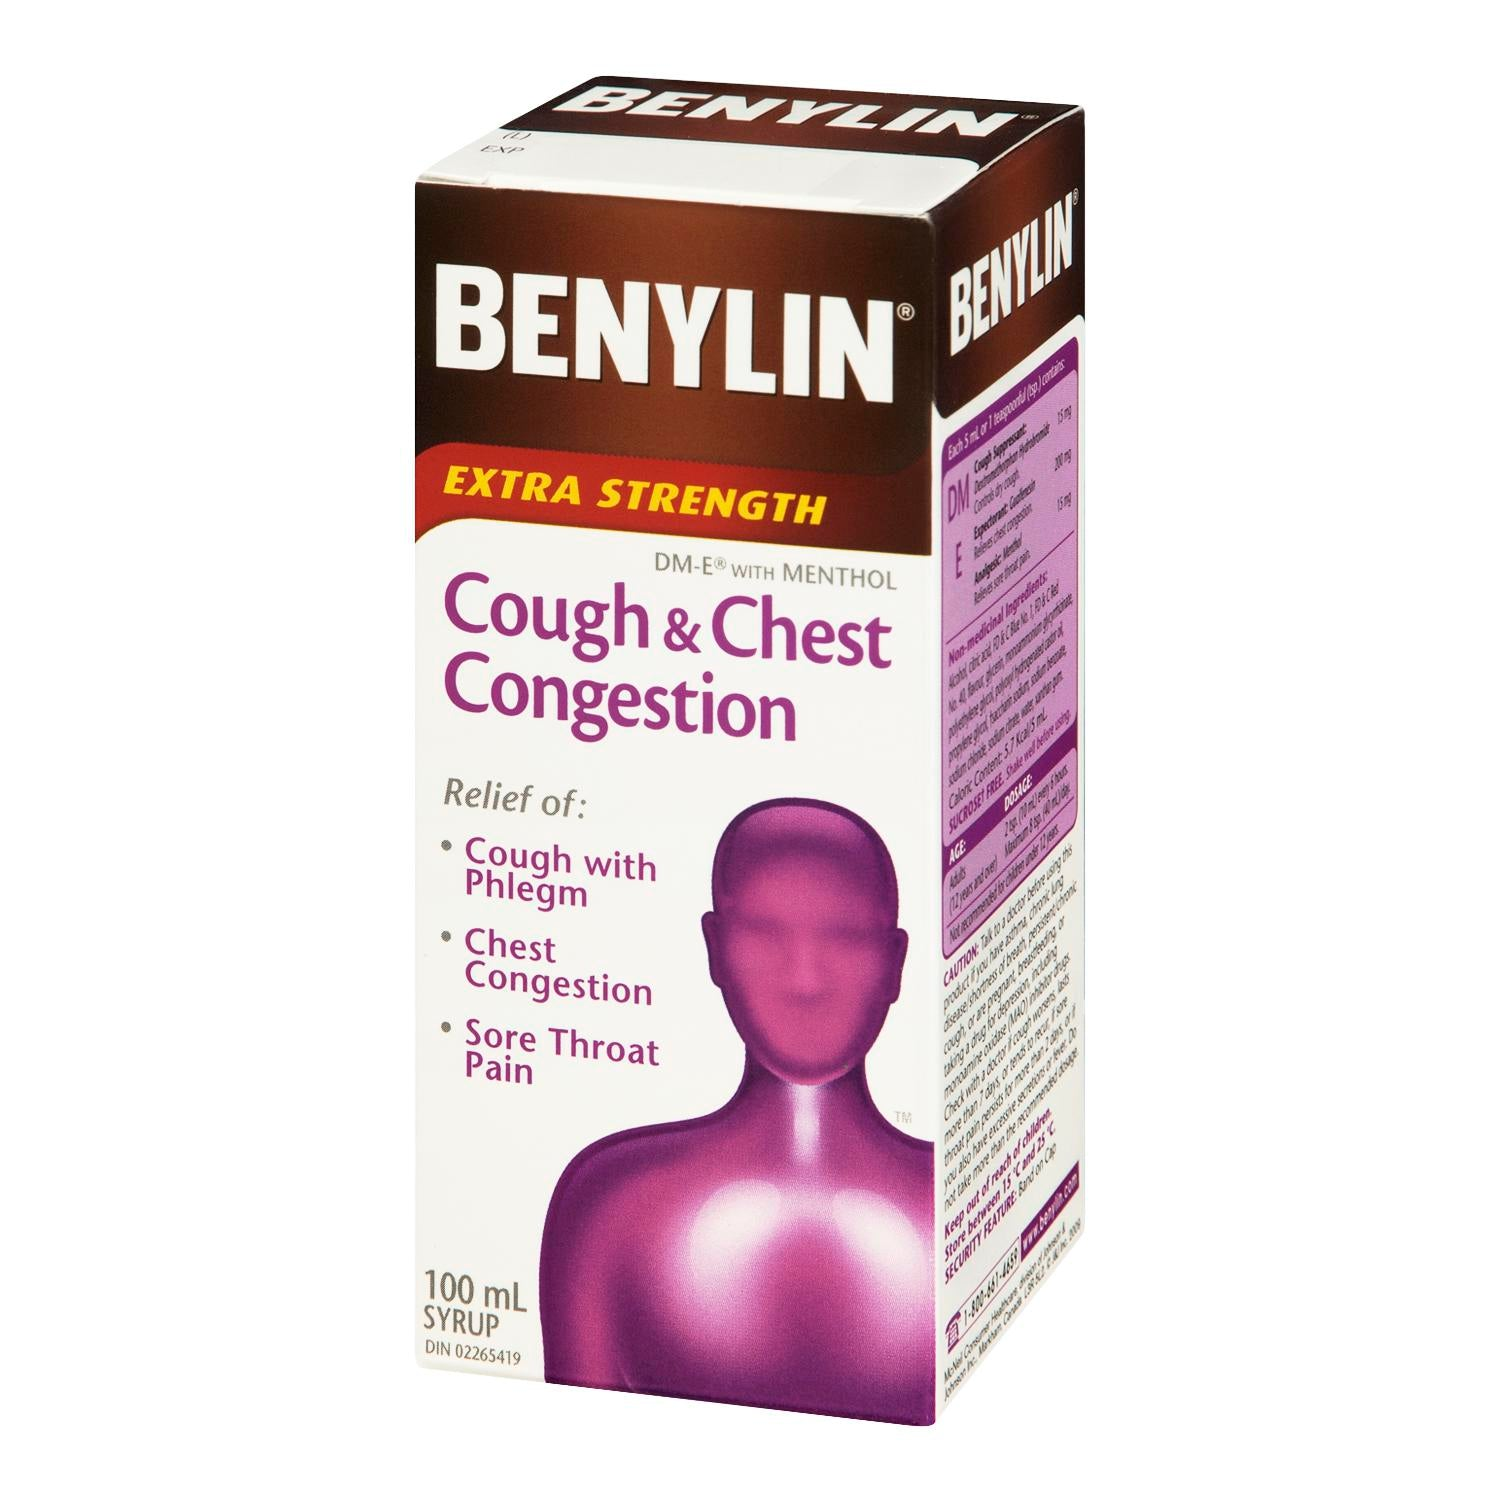 Benylin Cough & Chest Congestion Extra Strength